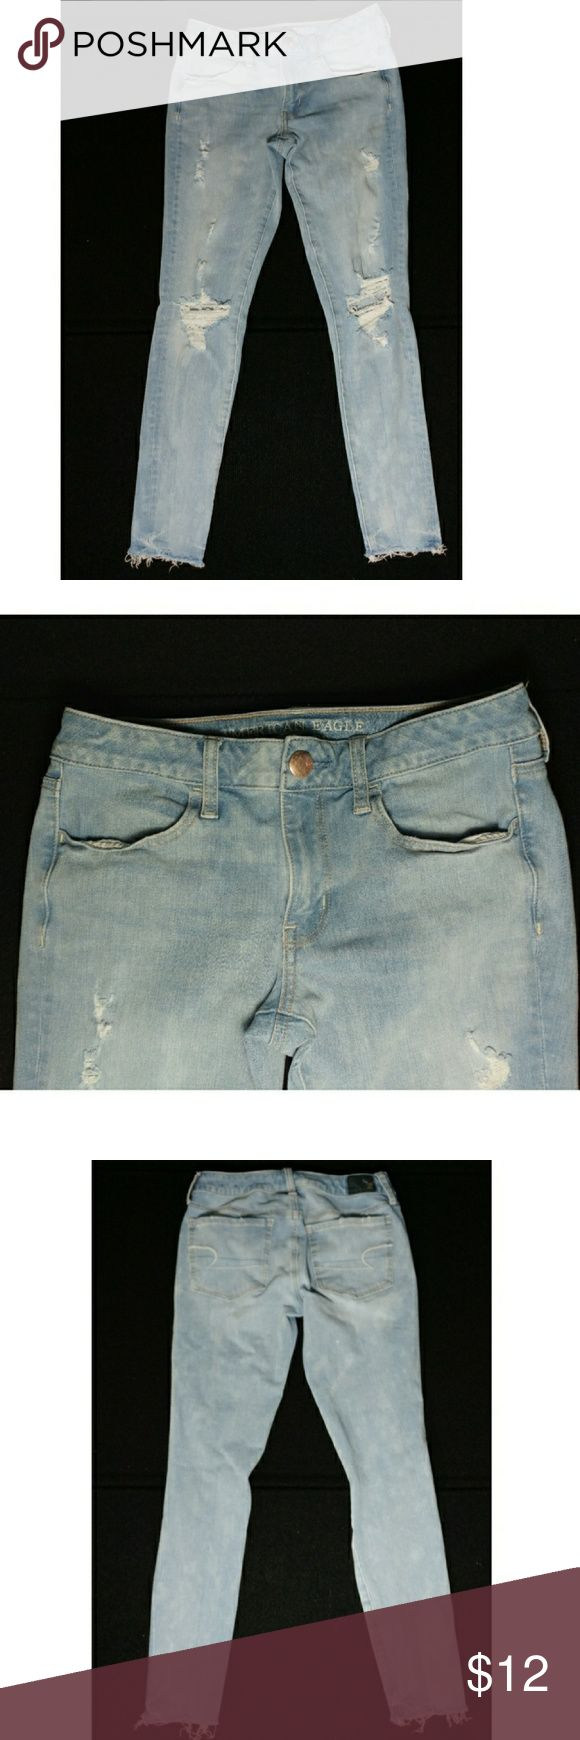 American Eagle Outfitters Distressed Jeans Sz 6 You are looking at a pair of American Eagle Distressed Light Washed Jeans size 6. They have ripped knees and frayed ankles.  These are in good used condition! American Eagle Outfitters Jeans Skinny